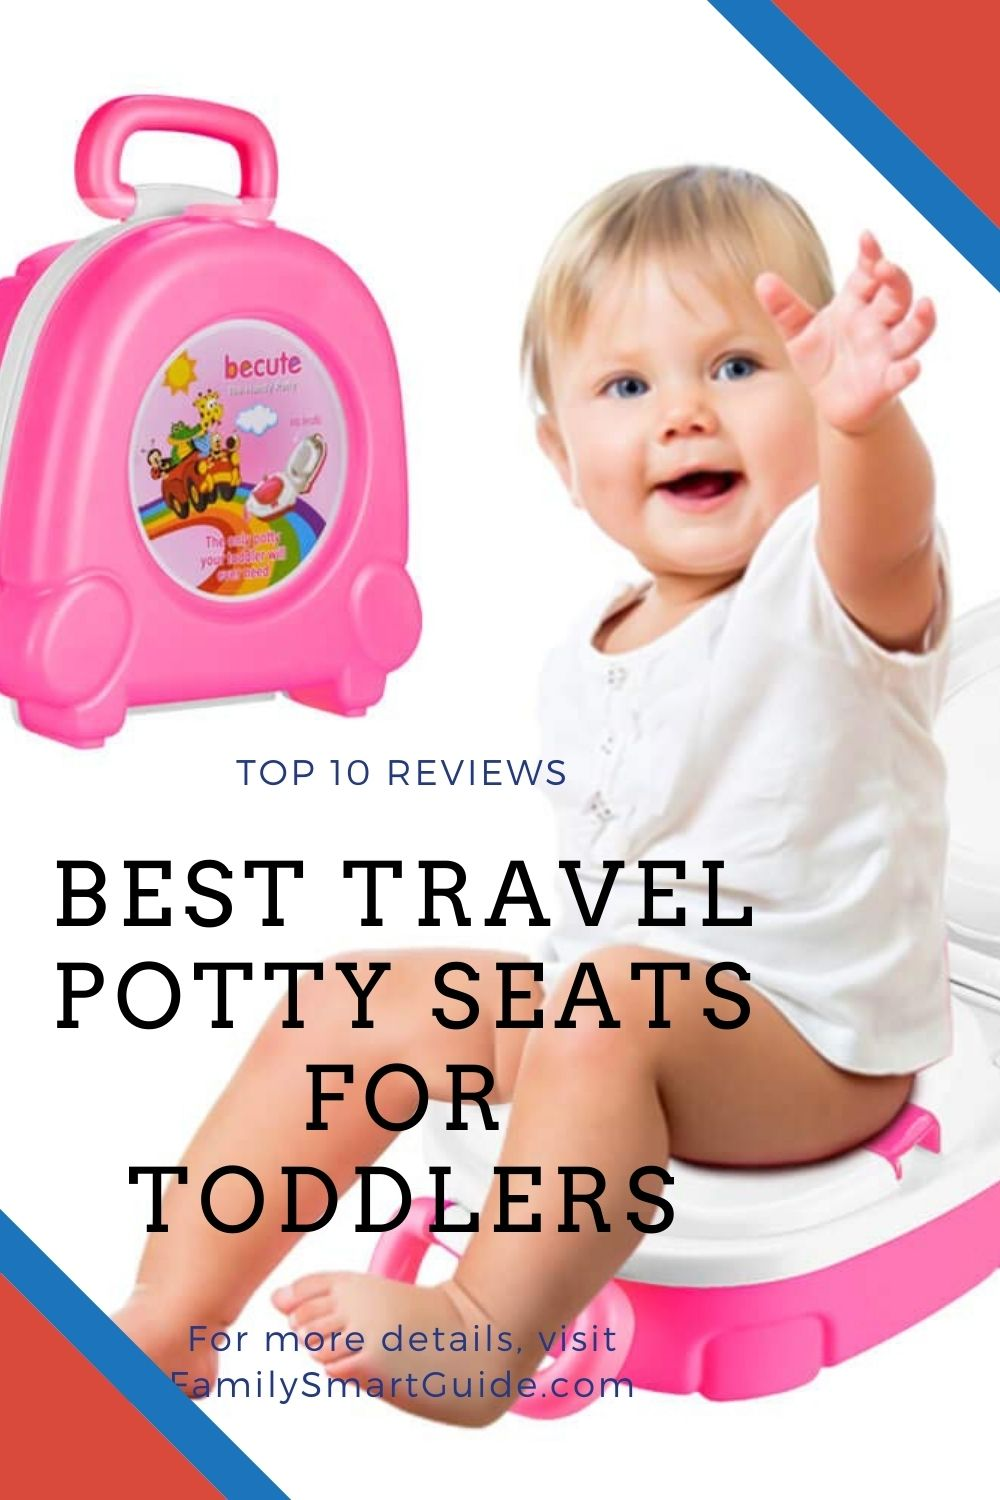 Top 10 Best Travel Potty Seats for Toddlers Reviews